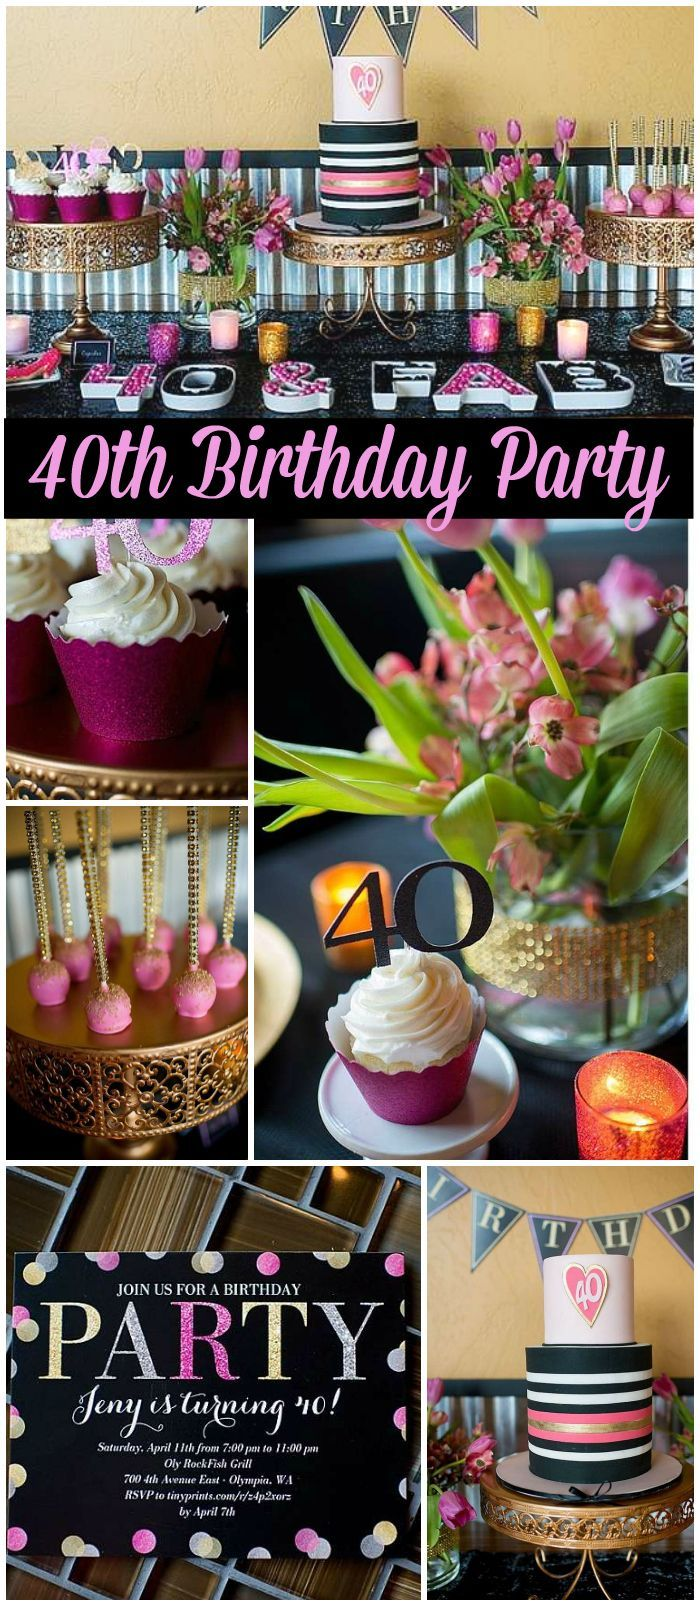 Check Out This Glamorous 40th Birthday Party With Stylish Decor And Gorgeous Treats See More